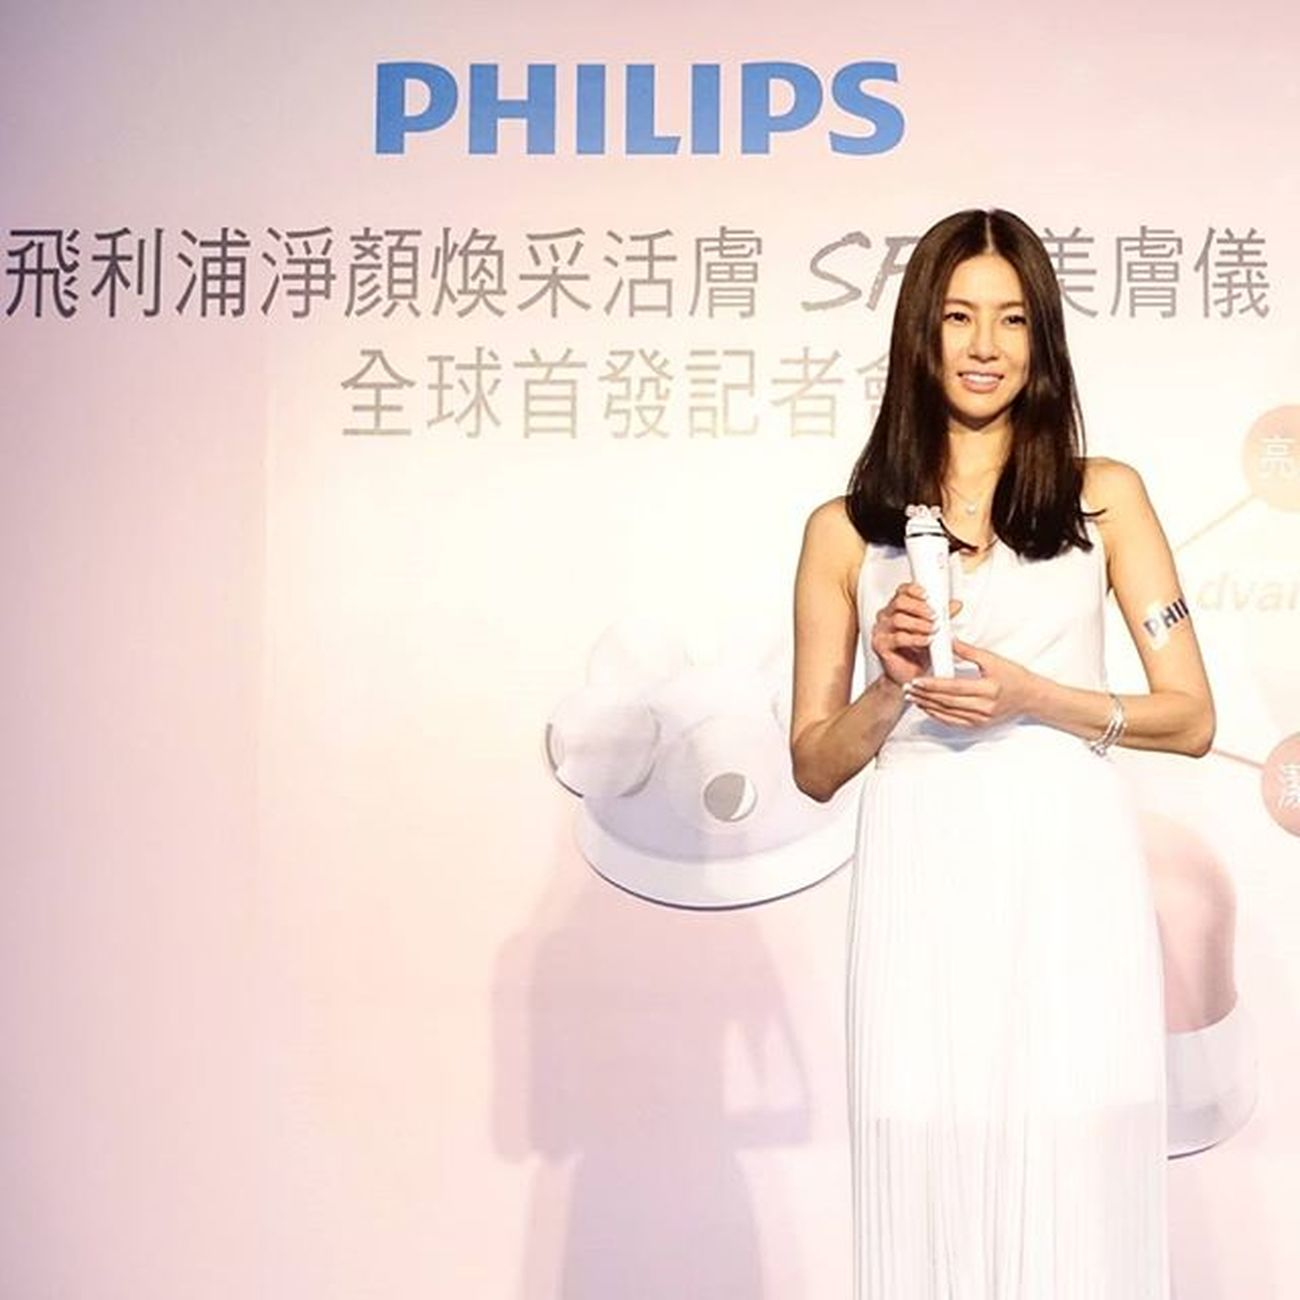 Philips Beauty「VisaPure Advanced淨顏煥采活膚SPA美膚儀」發表會,淨膚+按摩+亮眸導入三合一 Philips Philipsbeauty Visapureadvanced Visapure Skincare Mobile01 愛曼達